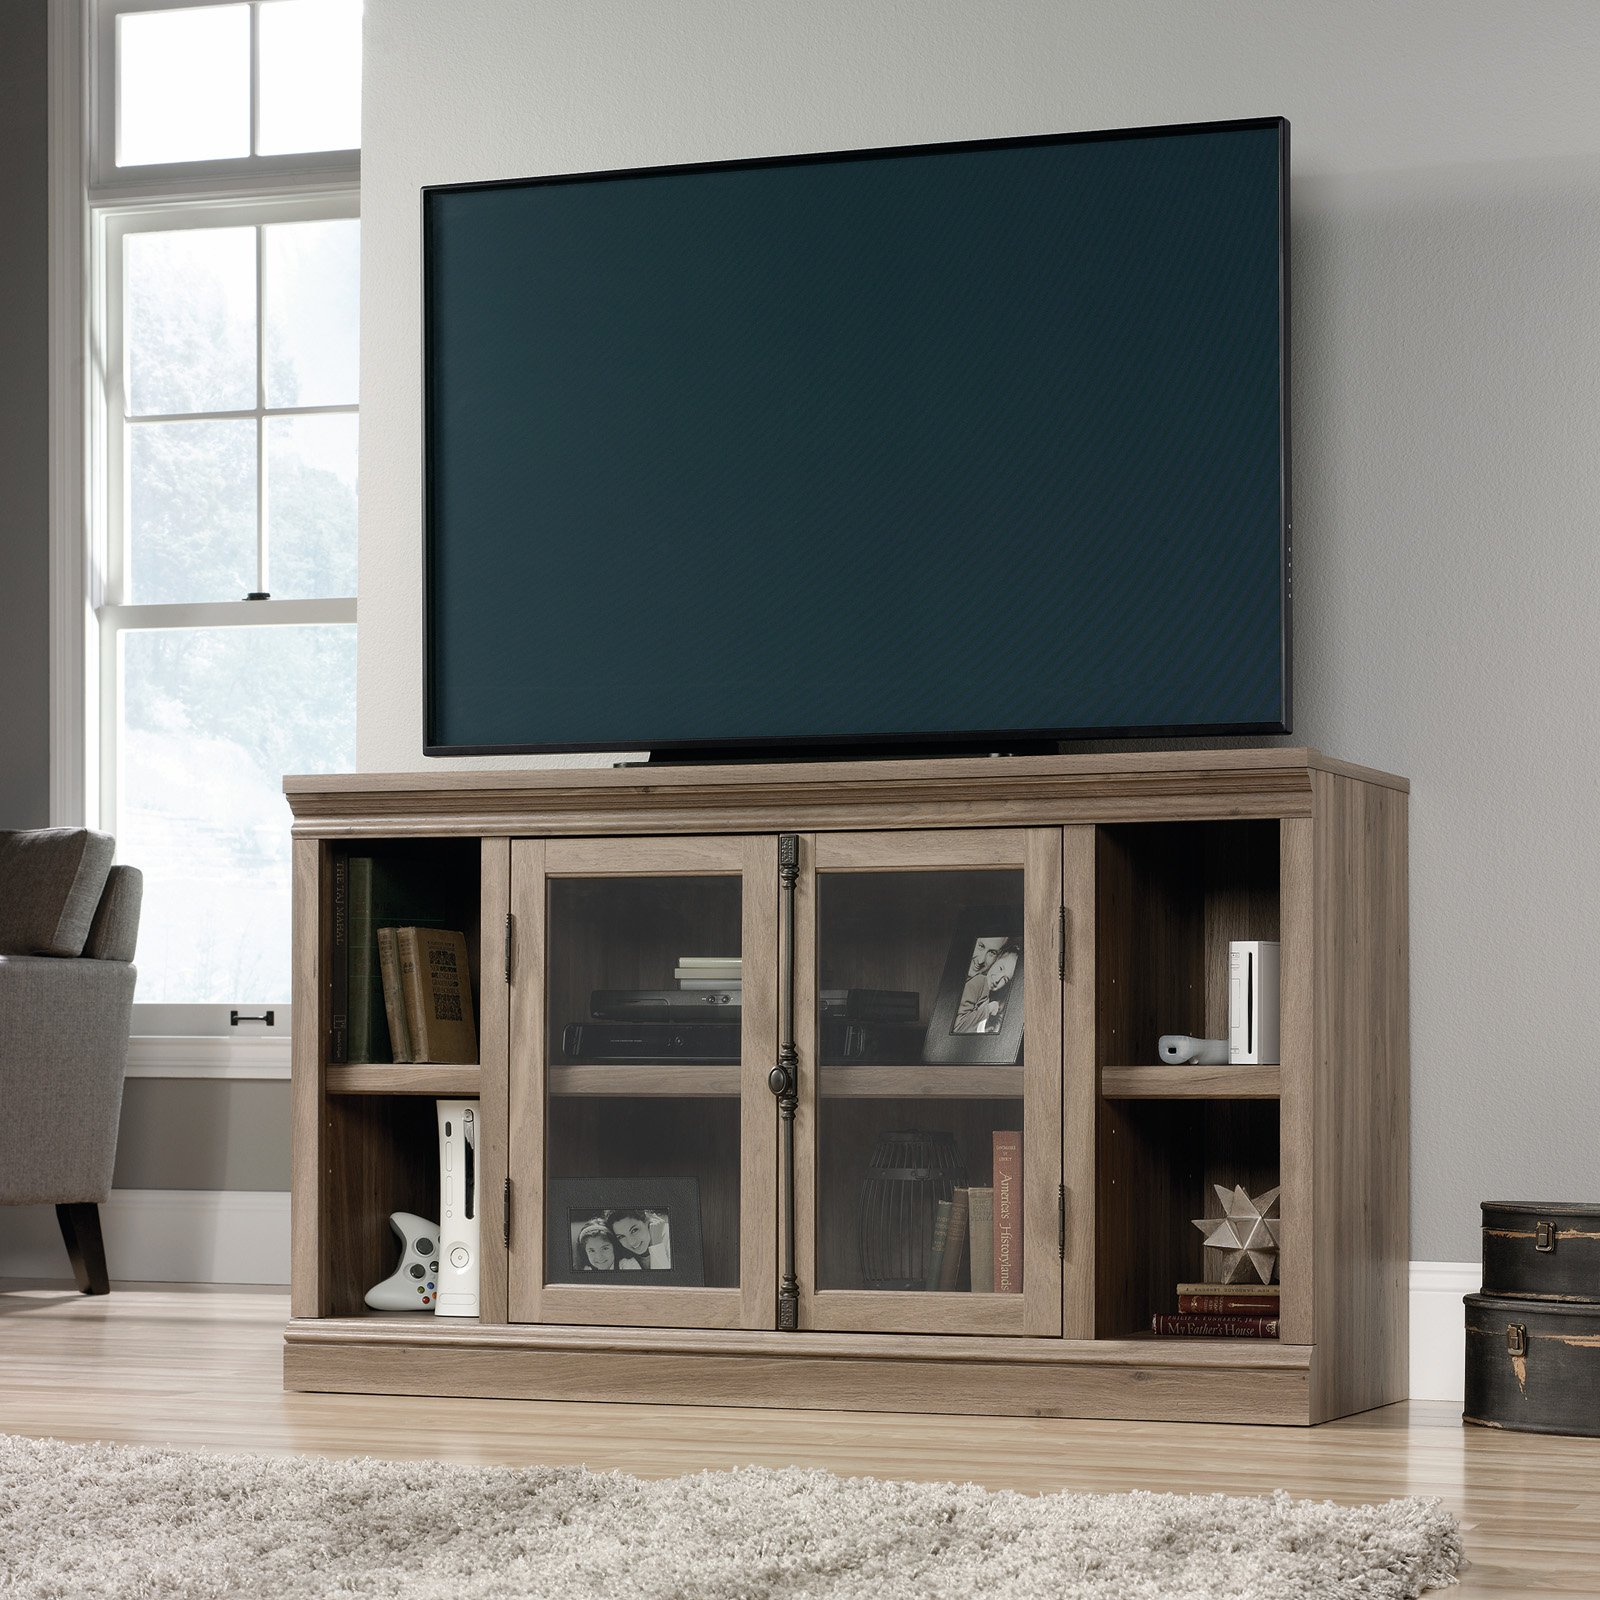 Sauder Barrister Lane Entertainment Credenza For TV's Up To 60\ by Sauder Woodworking Co